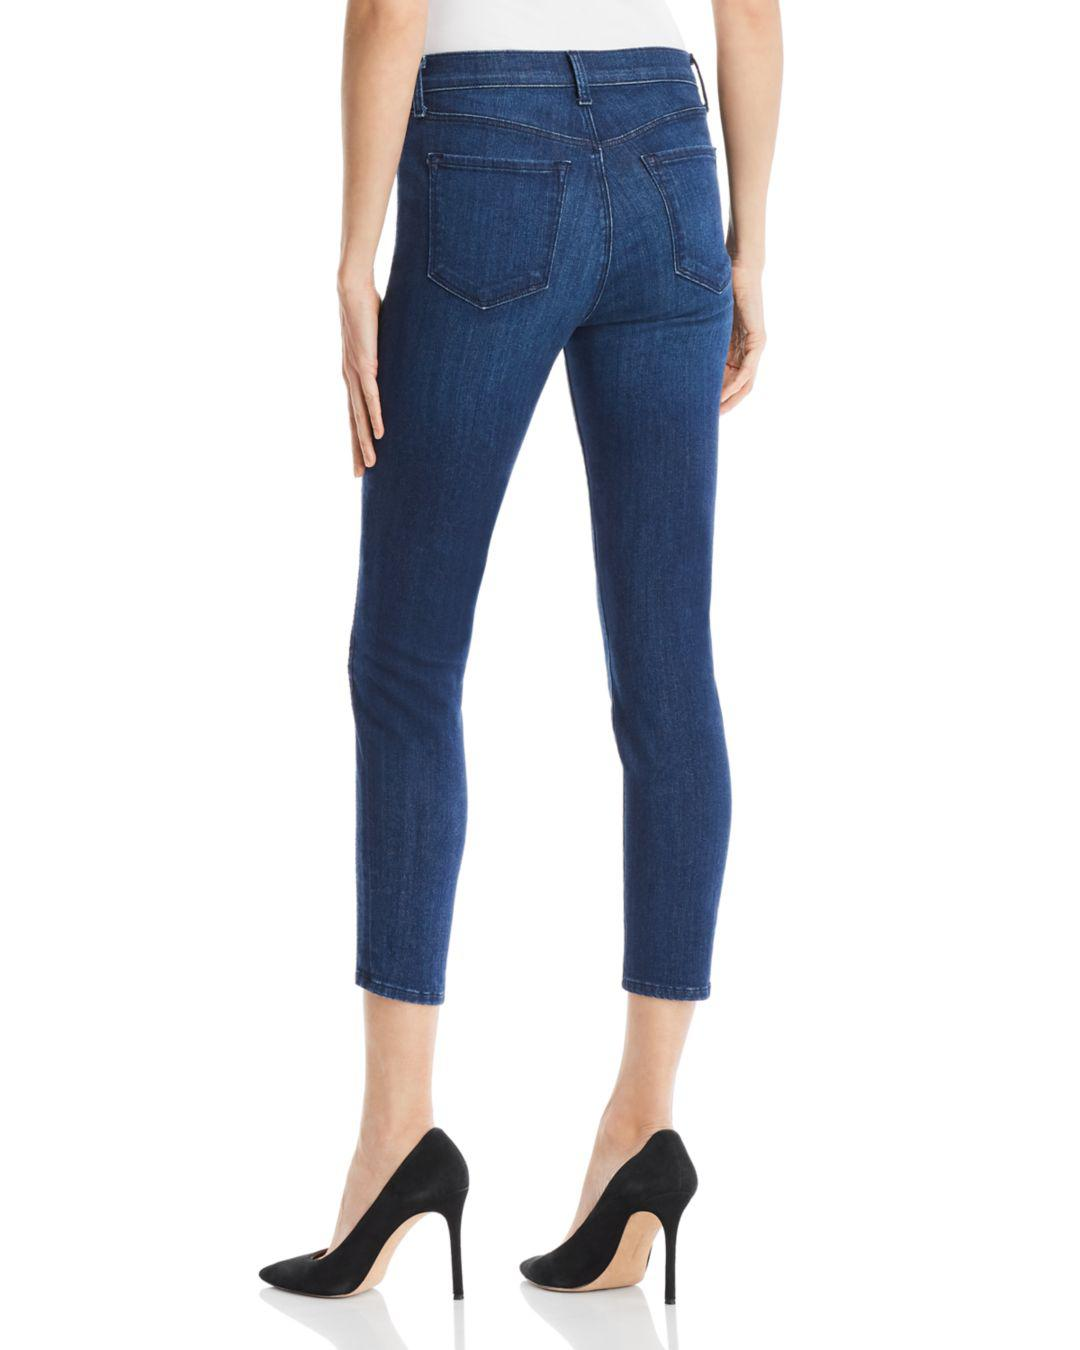 J Brand Alana Ladder Lace Jeans In Indigo Ladder Lace in Blue